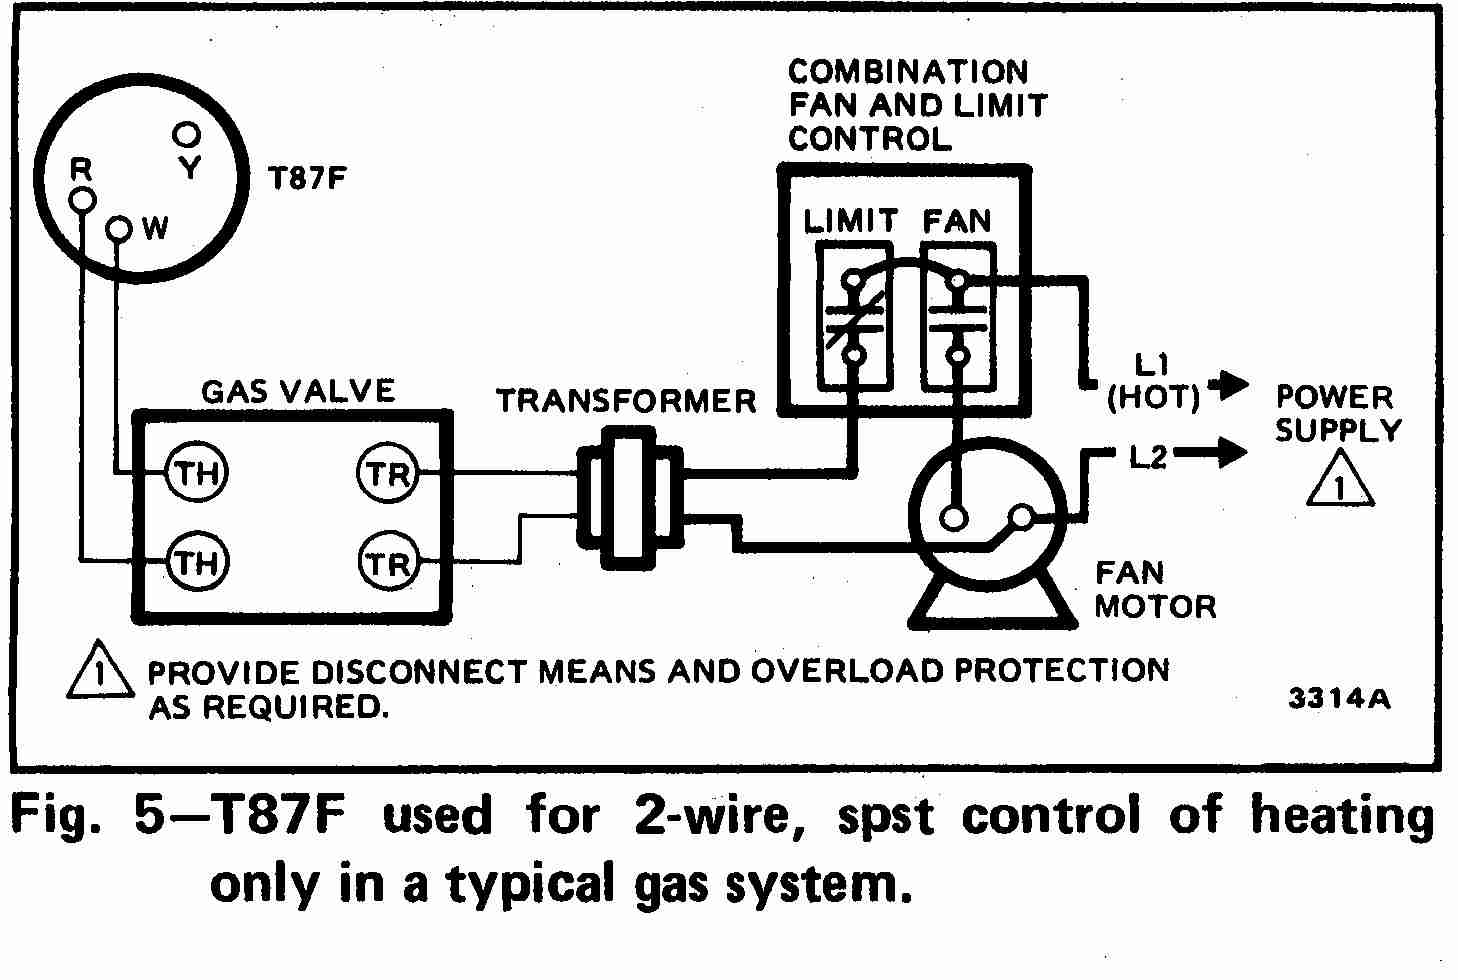 TT_T87F_0002_2Wg_DJF room thermostat wiring diagrams for hvac systems janitrol air conditioner wiring diagram at gsmx.co